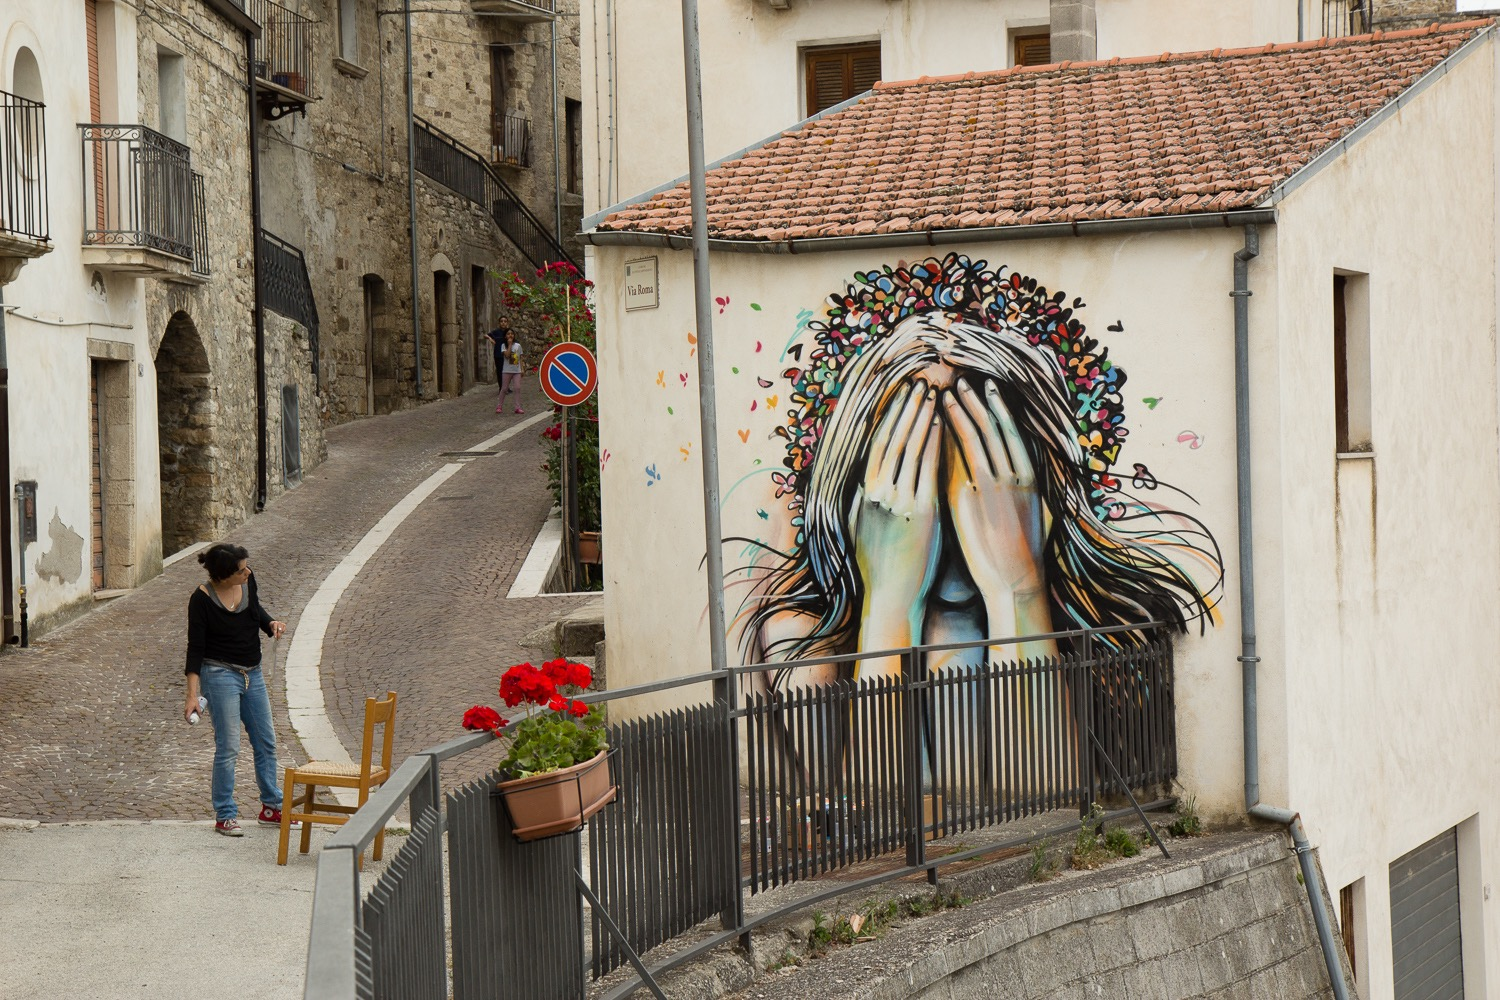 Street Art by Alice Pasquini in Civitacampomarano, Molise, Italy. Photo by Jessica Stewart 2